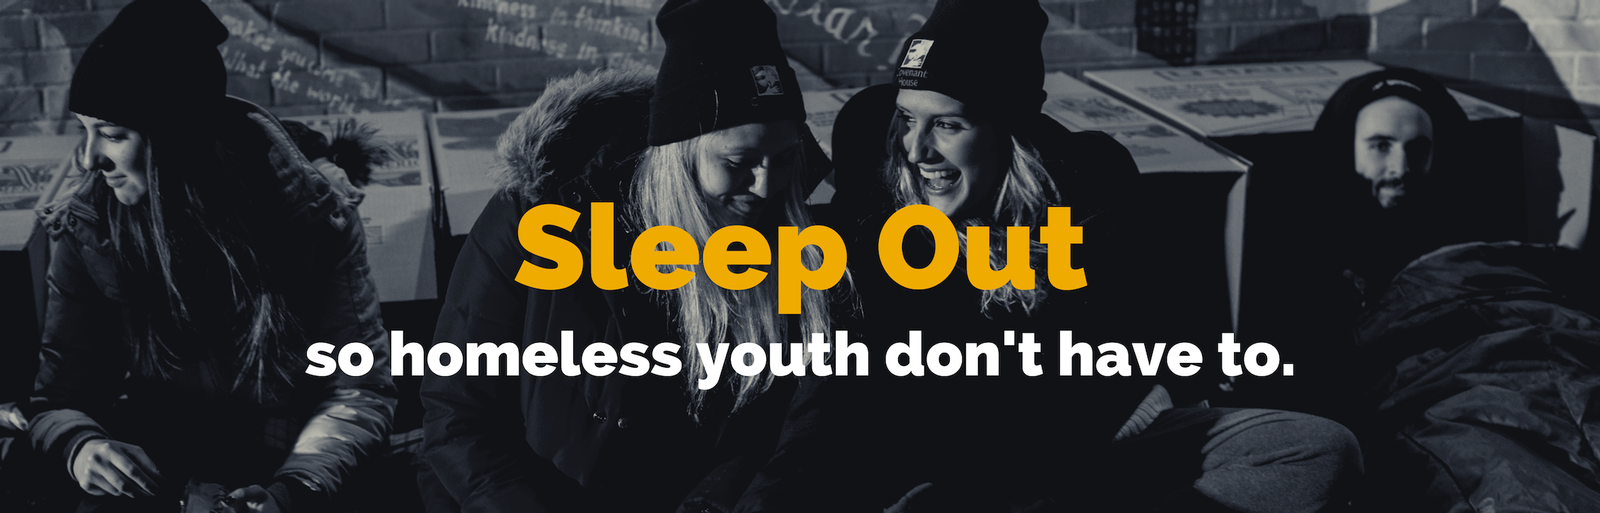 Sleep Out so homeless youth don't have to.